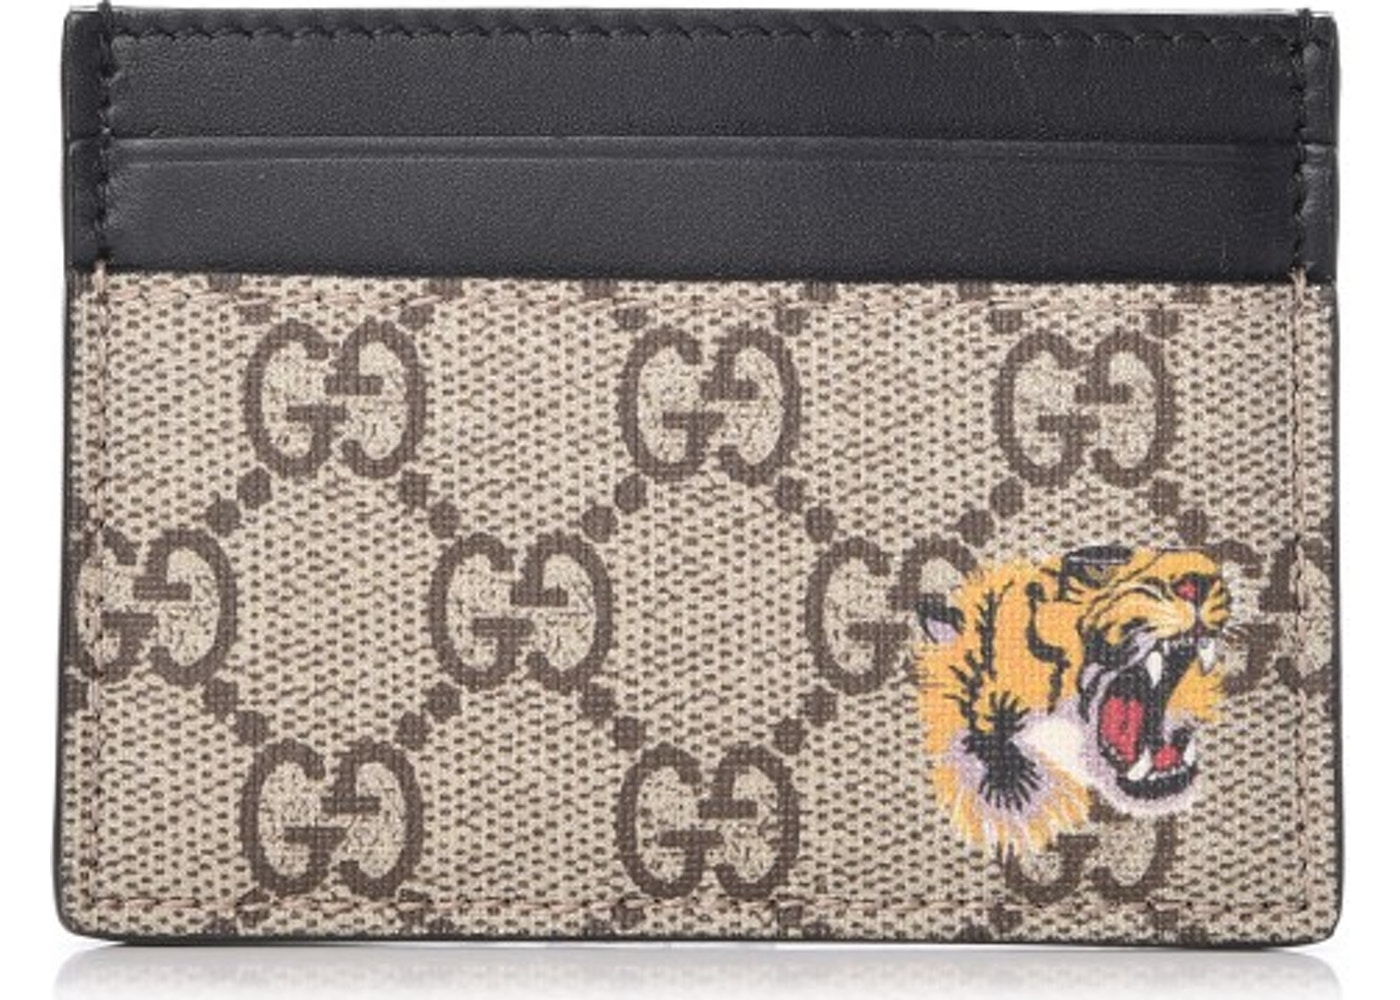 5491d26f2a58f6 Gucci Card Case Monogram GG Tiger Print Black/Beige